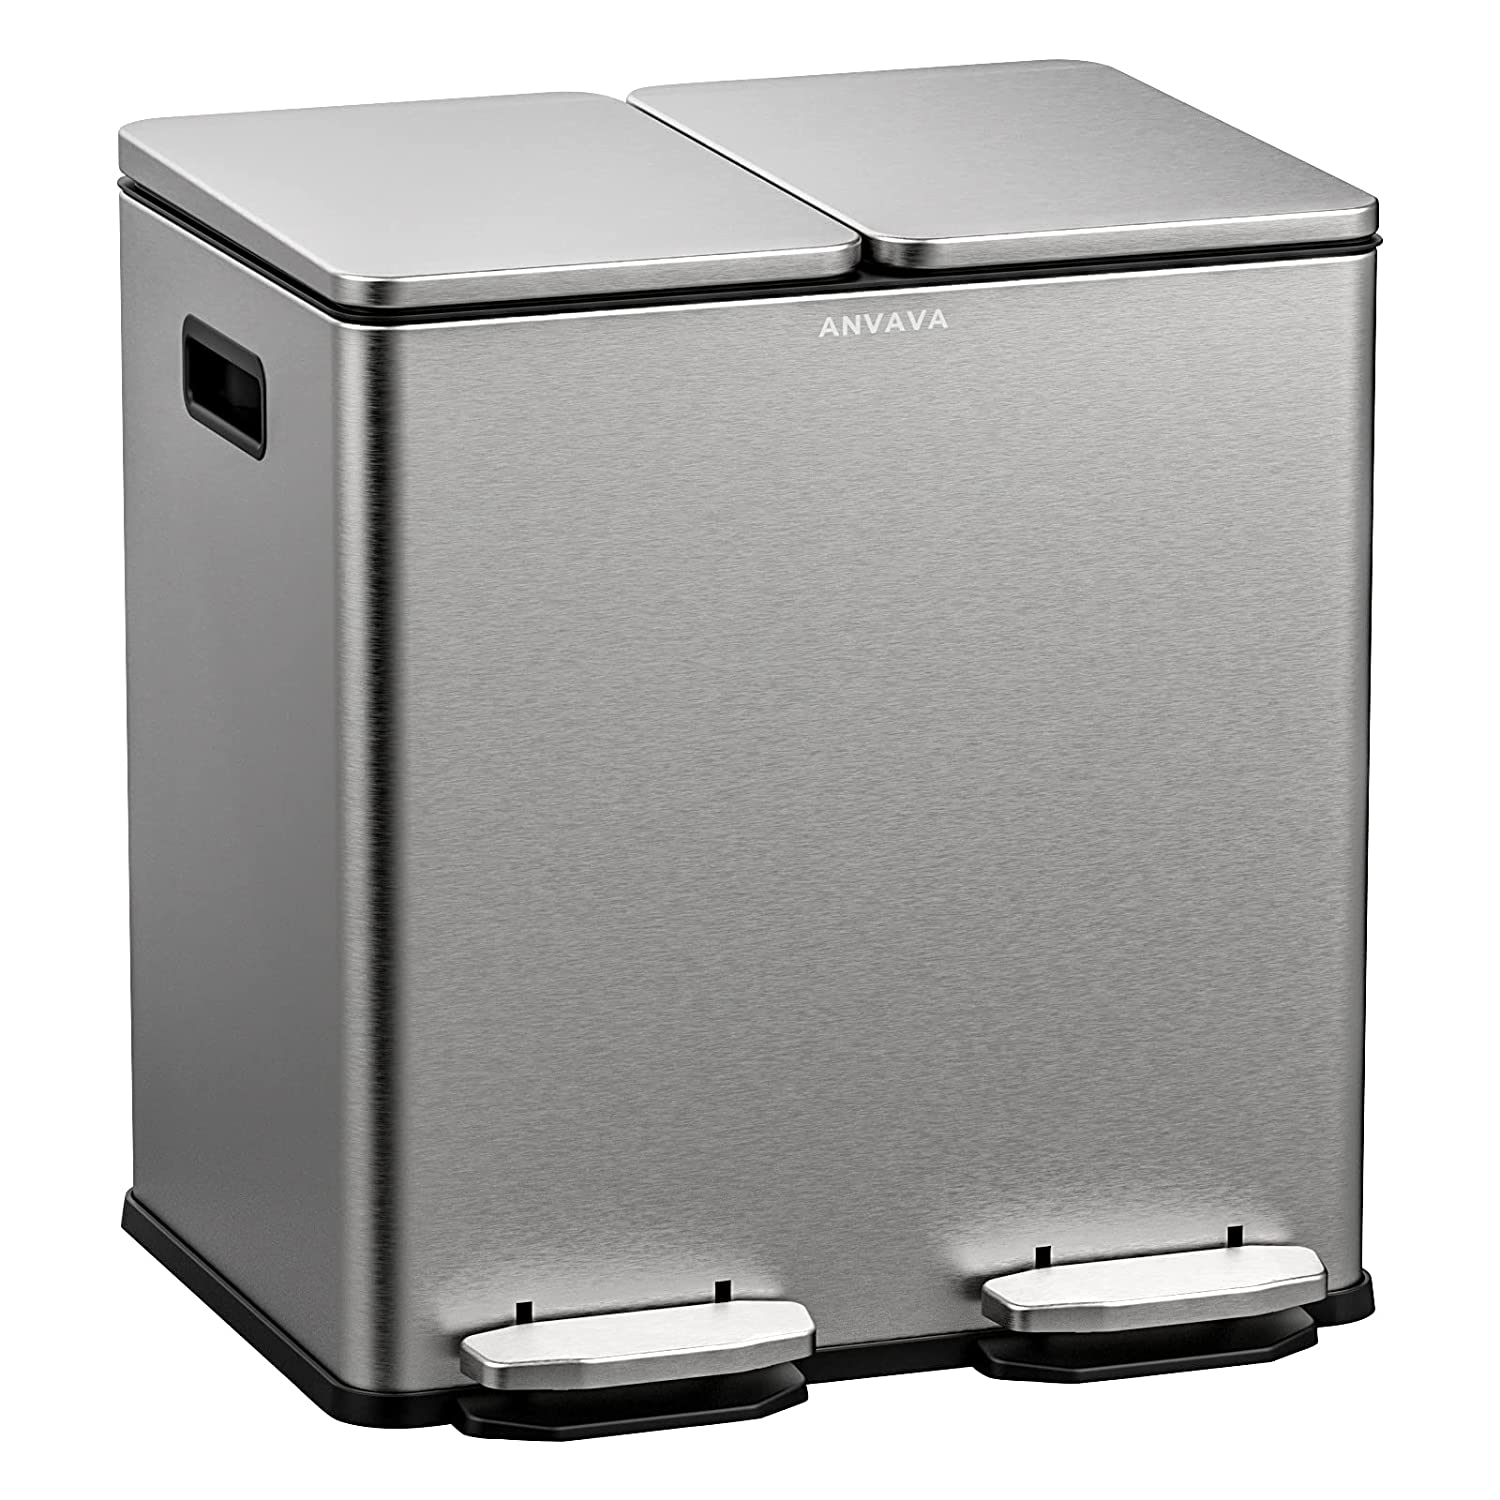 Max 87% OFF ANVAVA 20 Liter Dual Step Steel Can 2x10L 67% OFF of fixed price Trash Stainless